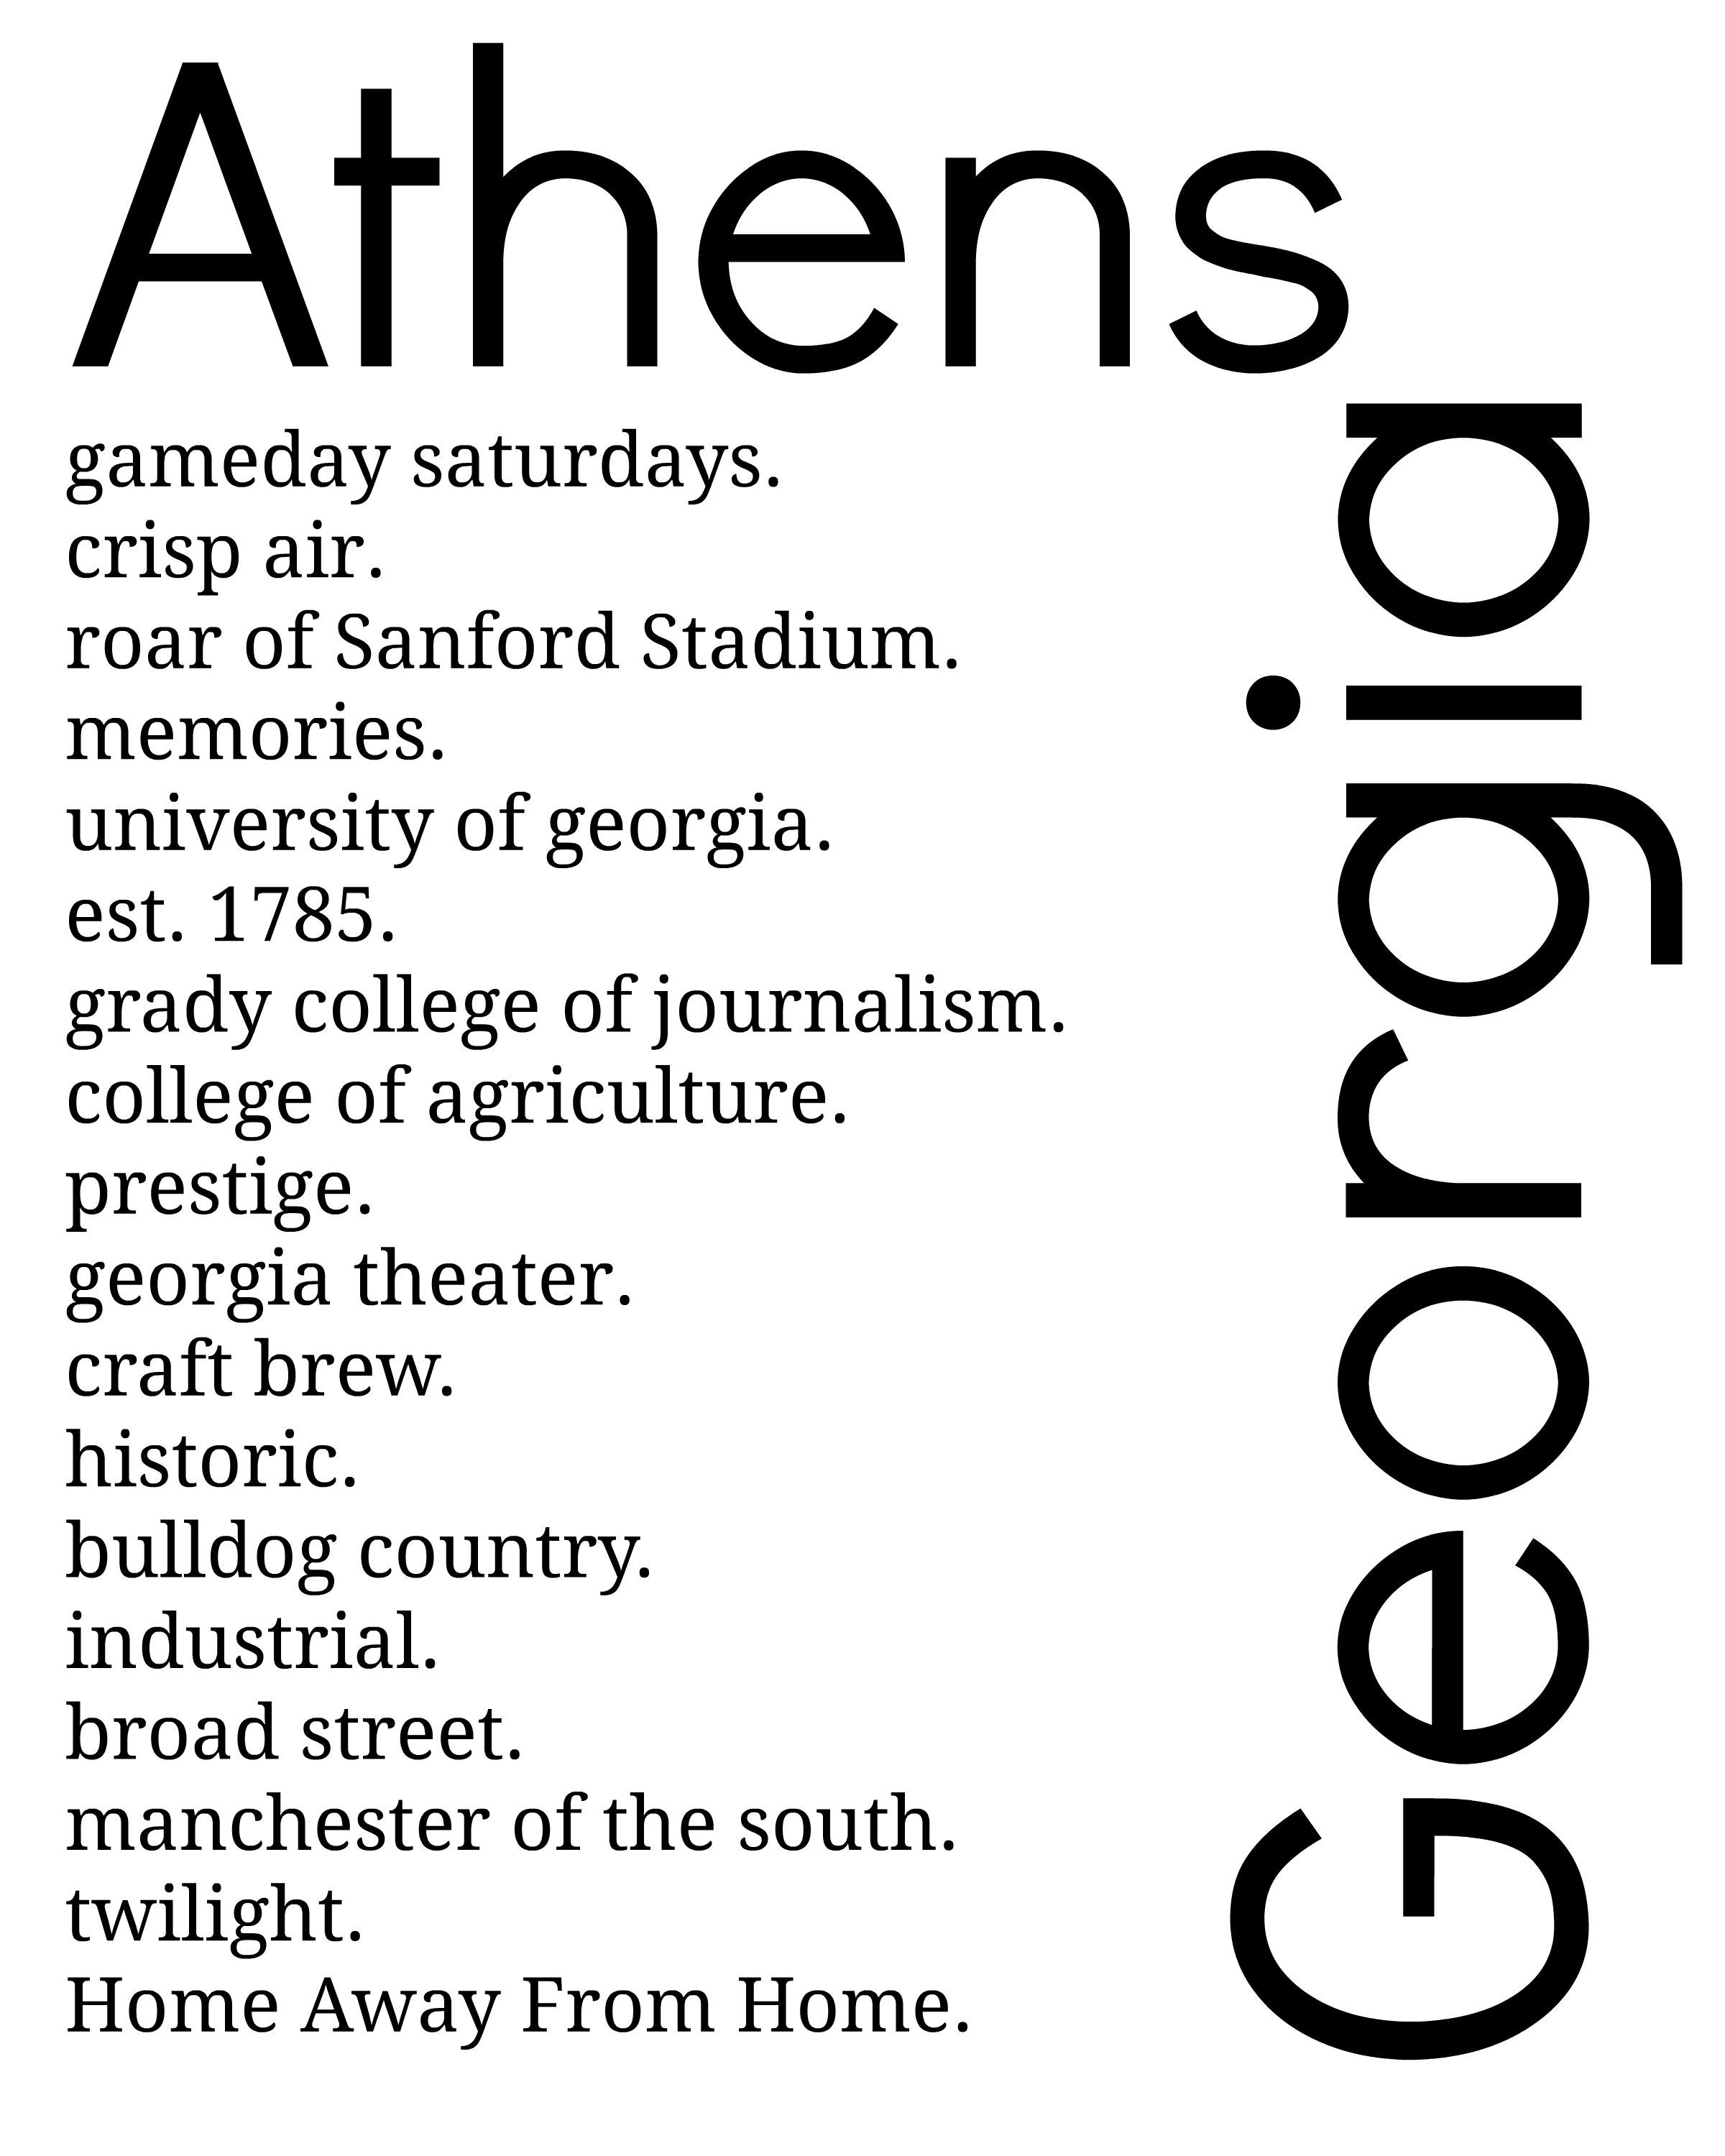 Our Athens